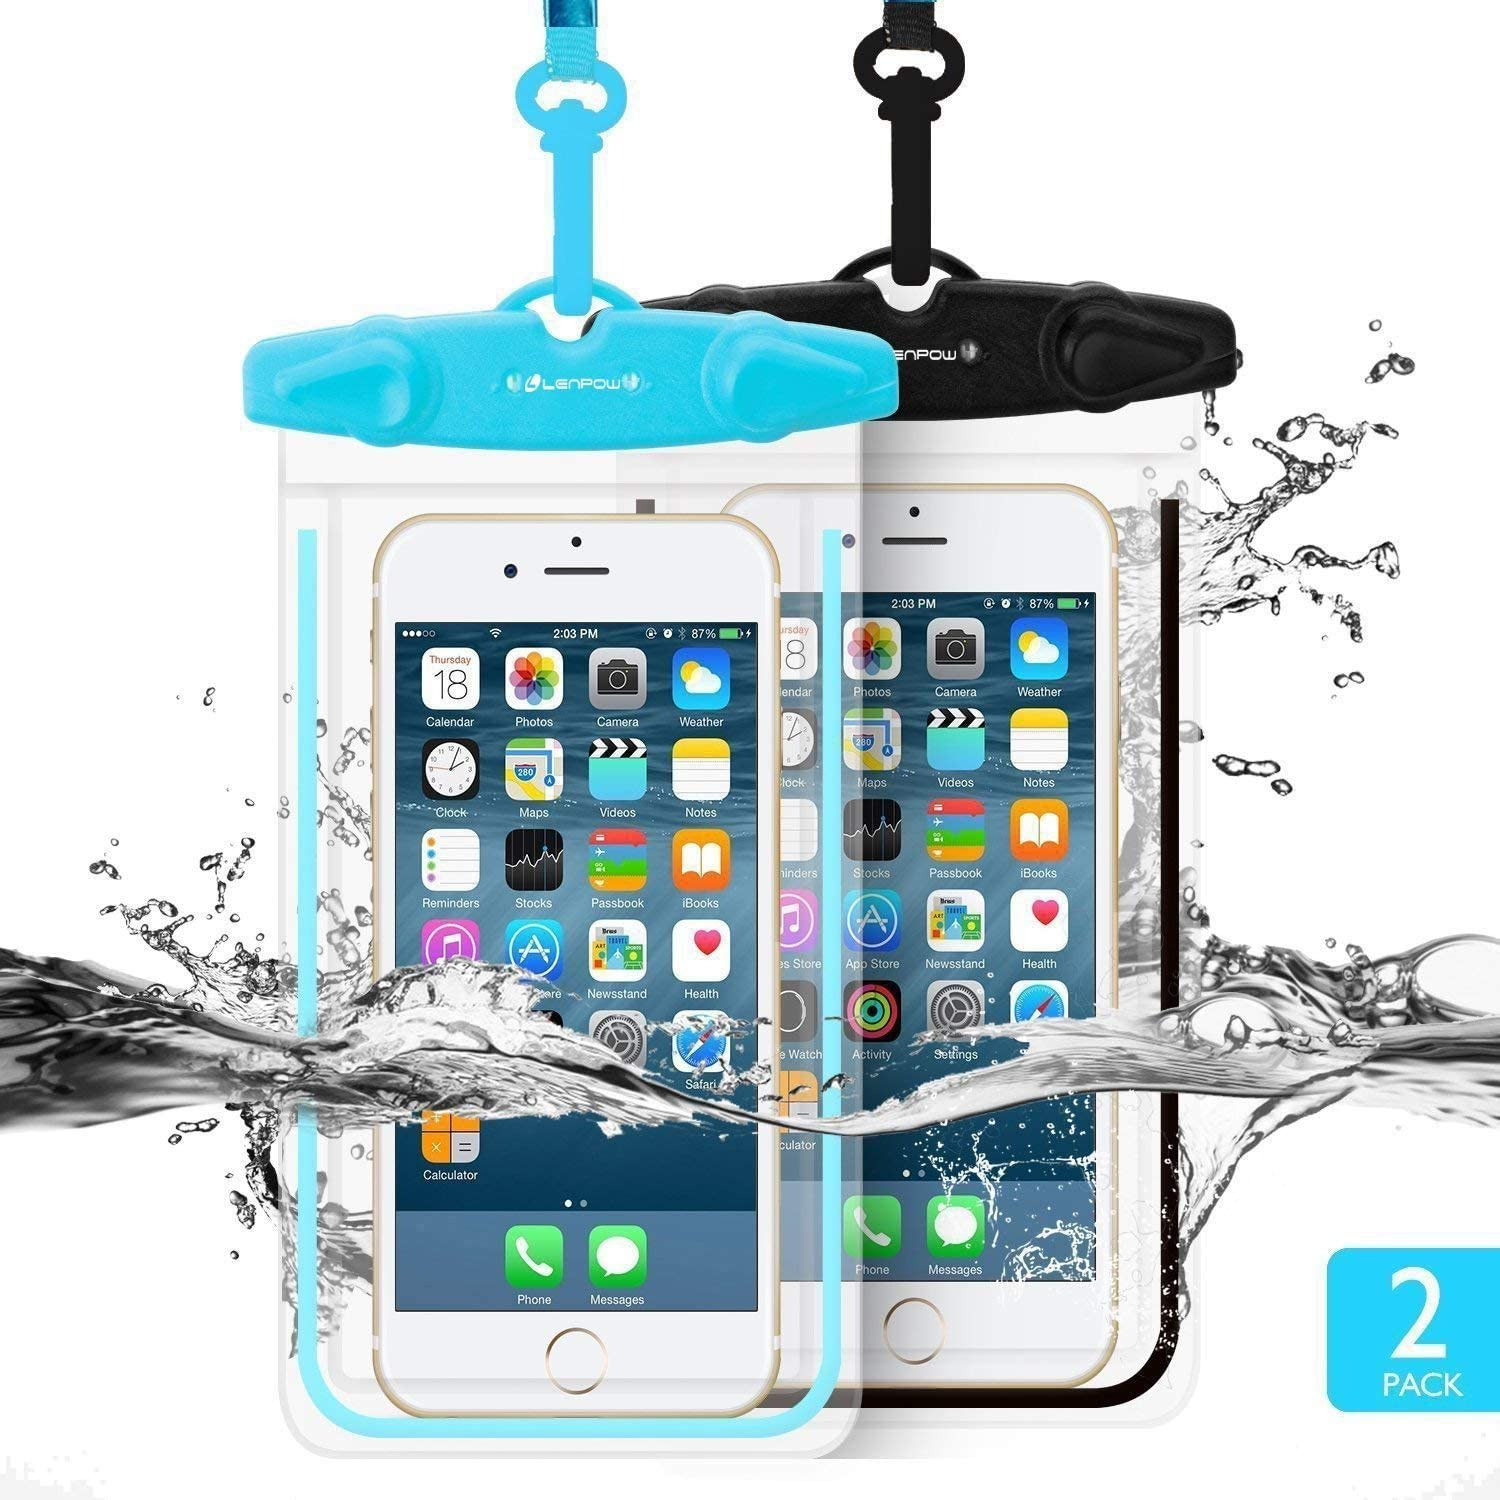 LENPOW Waterproof Phone Case, 2 Pack Universal Waterproof Pouch Dry Bag With Neck Strap Luminous Ornament for Water Games Protect iPhone 11 XS Max XR X 8 7 Plus Galaxy S10 S9 Note Google Pixel LG HTC